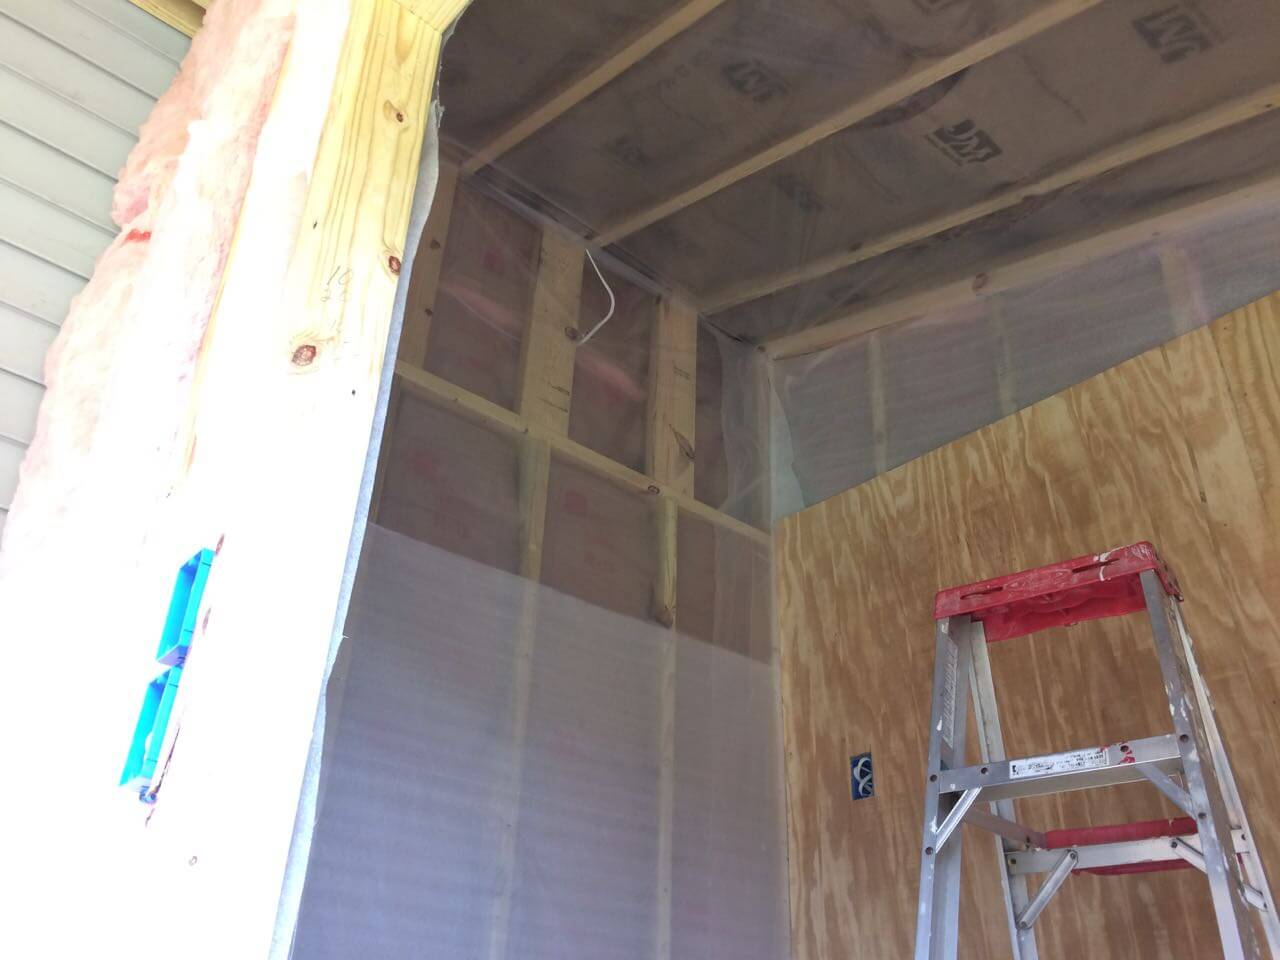 Maintaining high humidity is crucial, so we covered the insulation and walls with a moisture barrier.